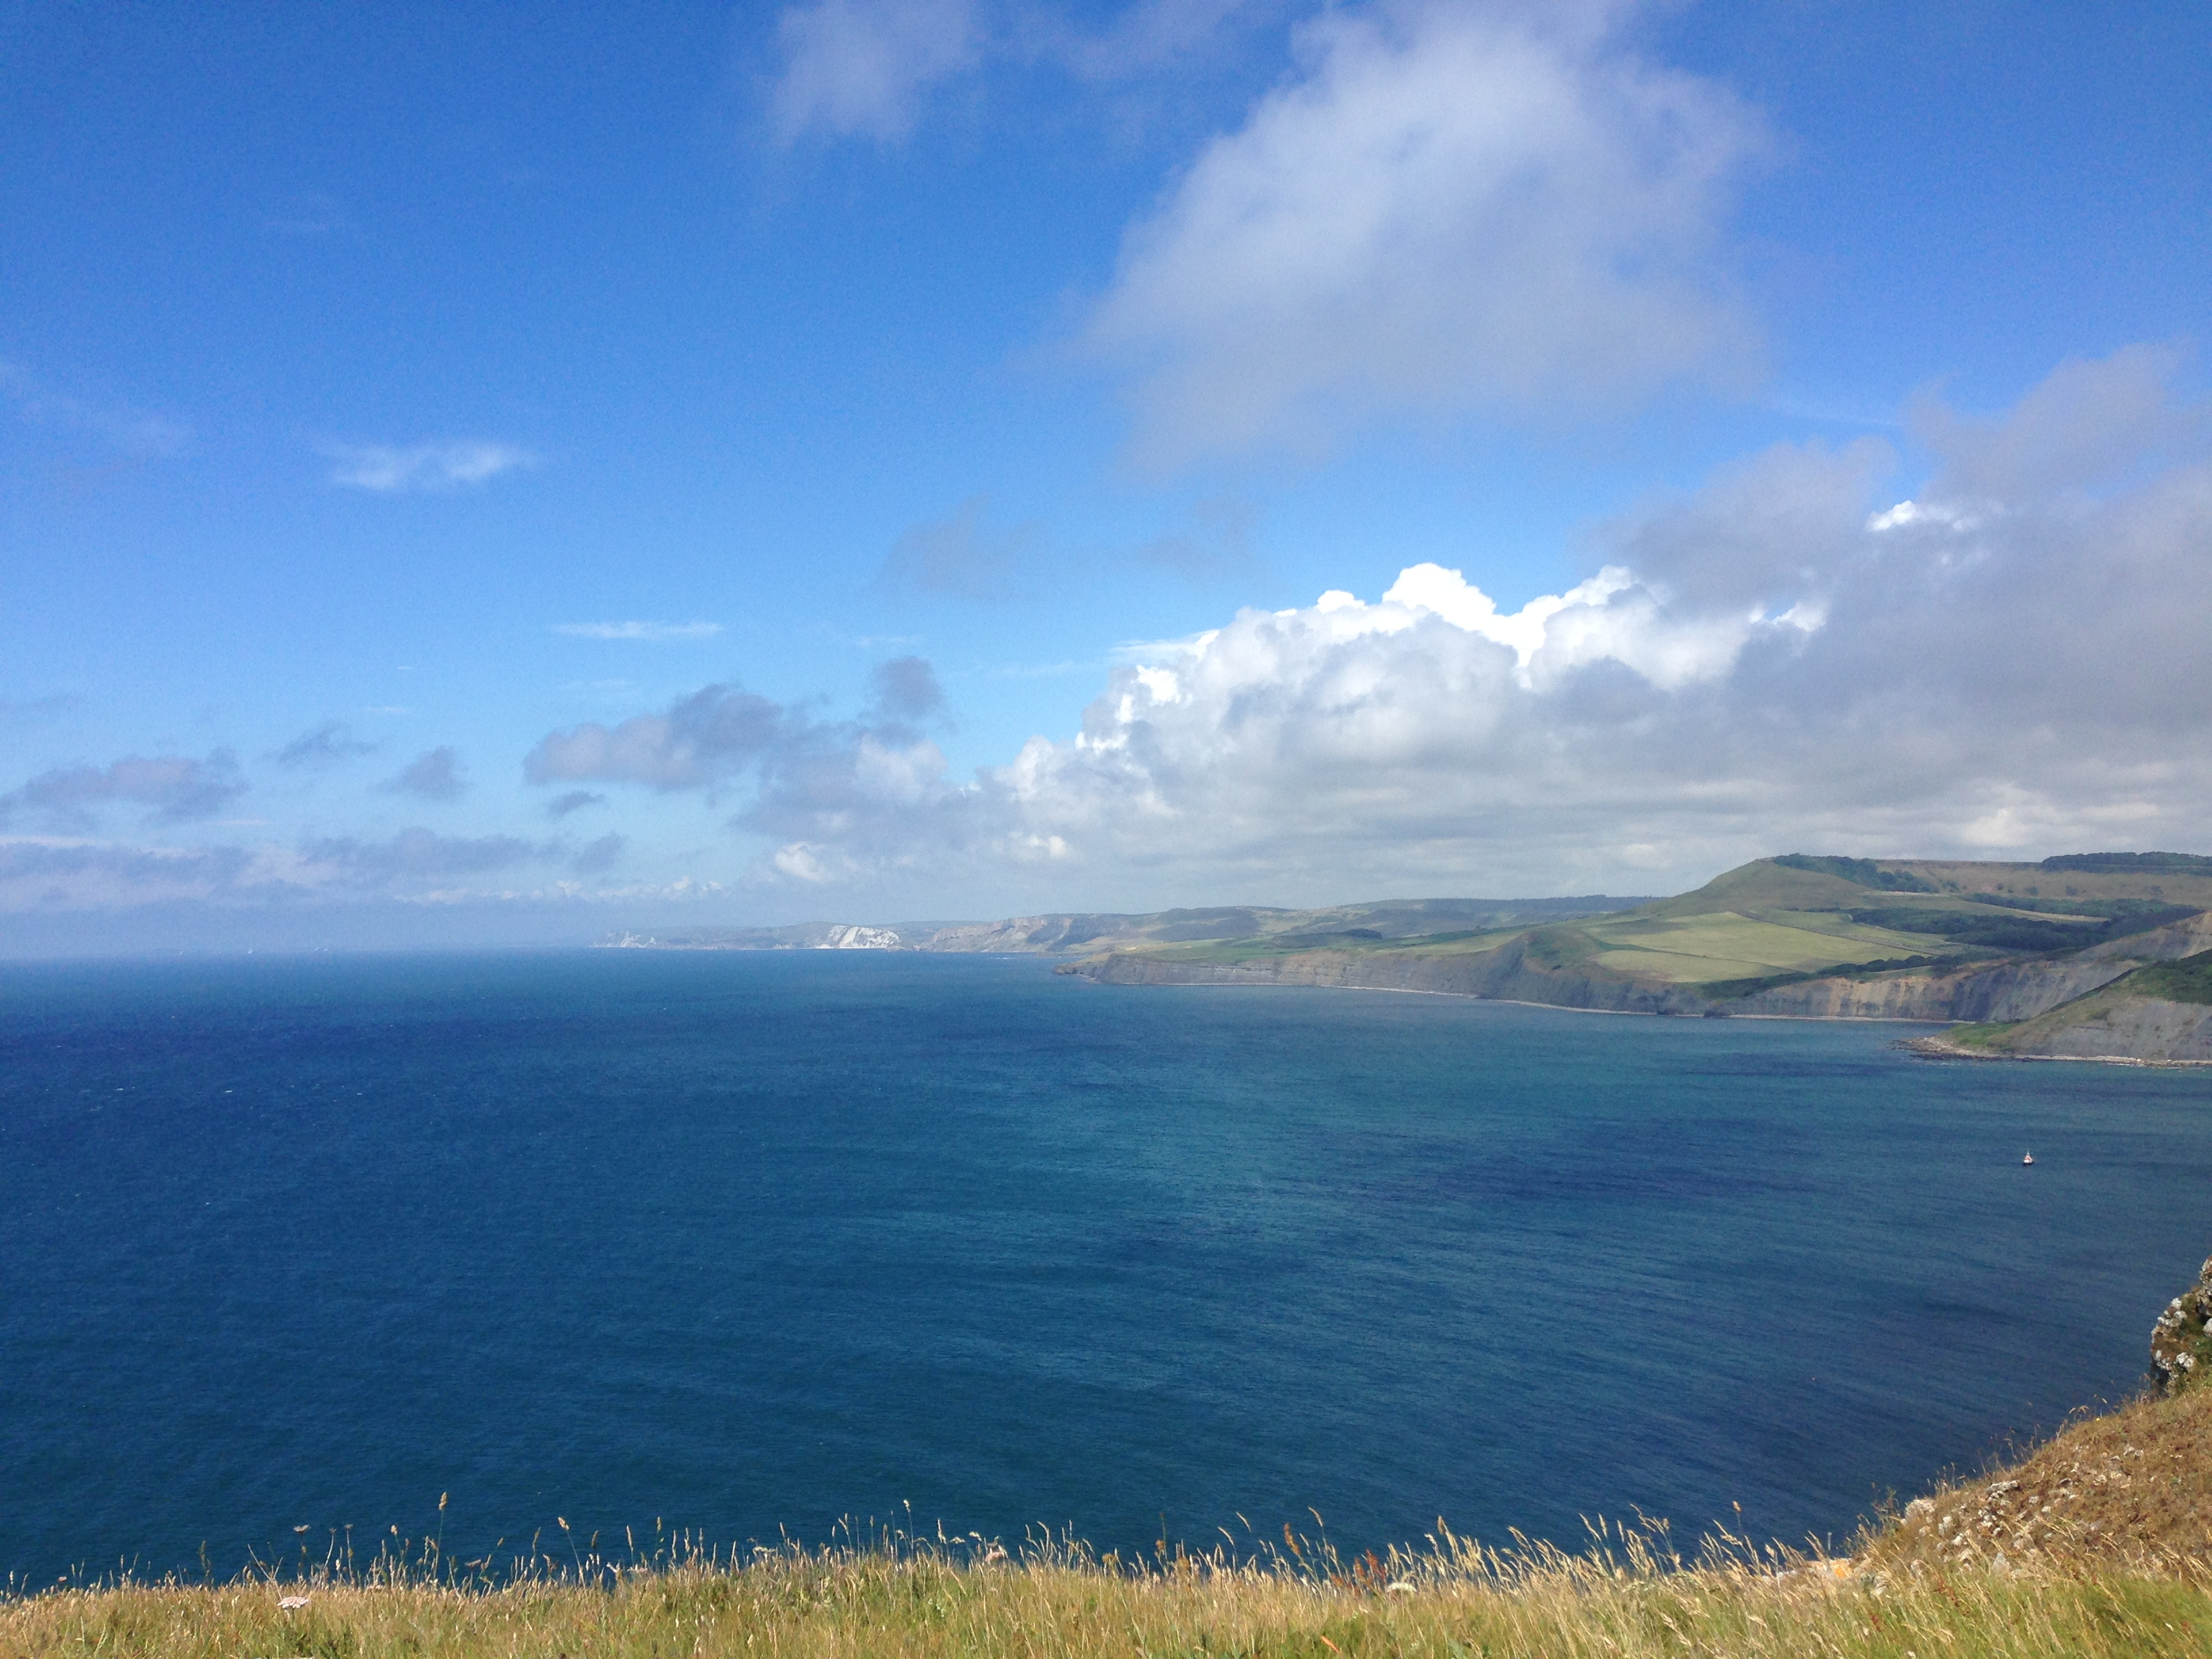 The view westward from St Aldhelm's Head